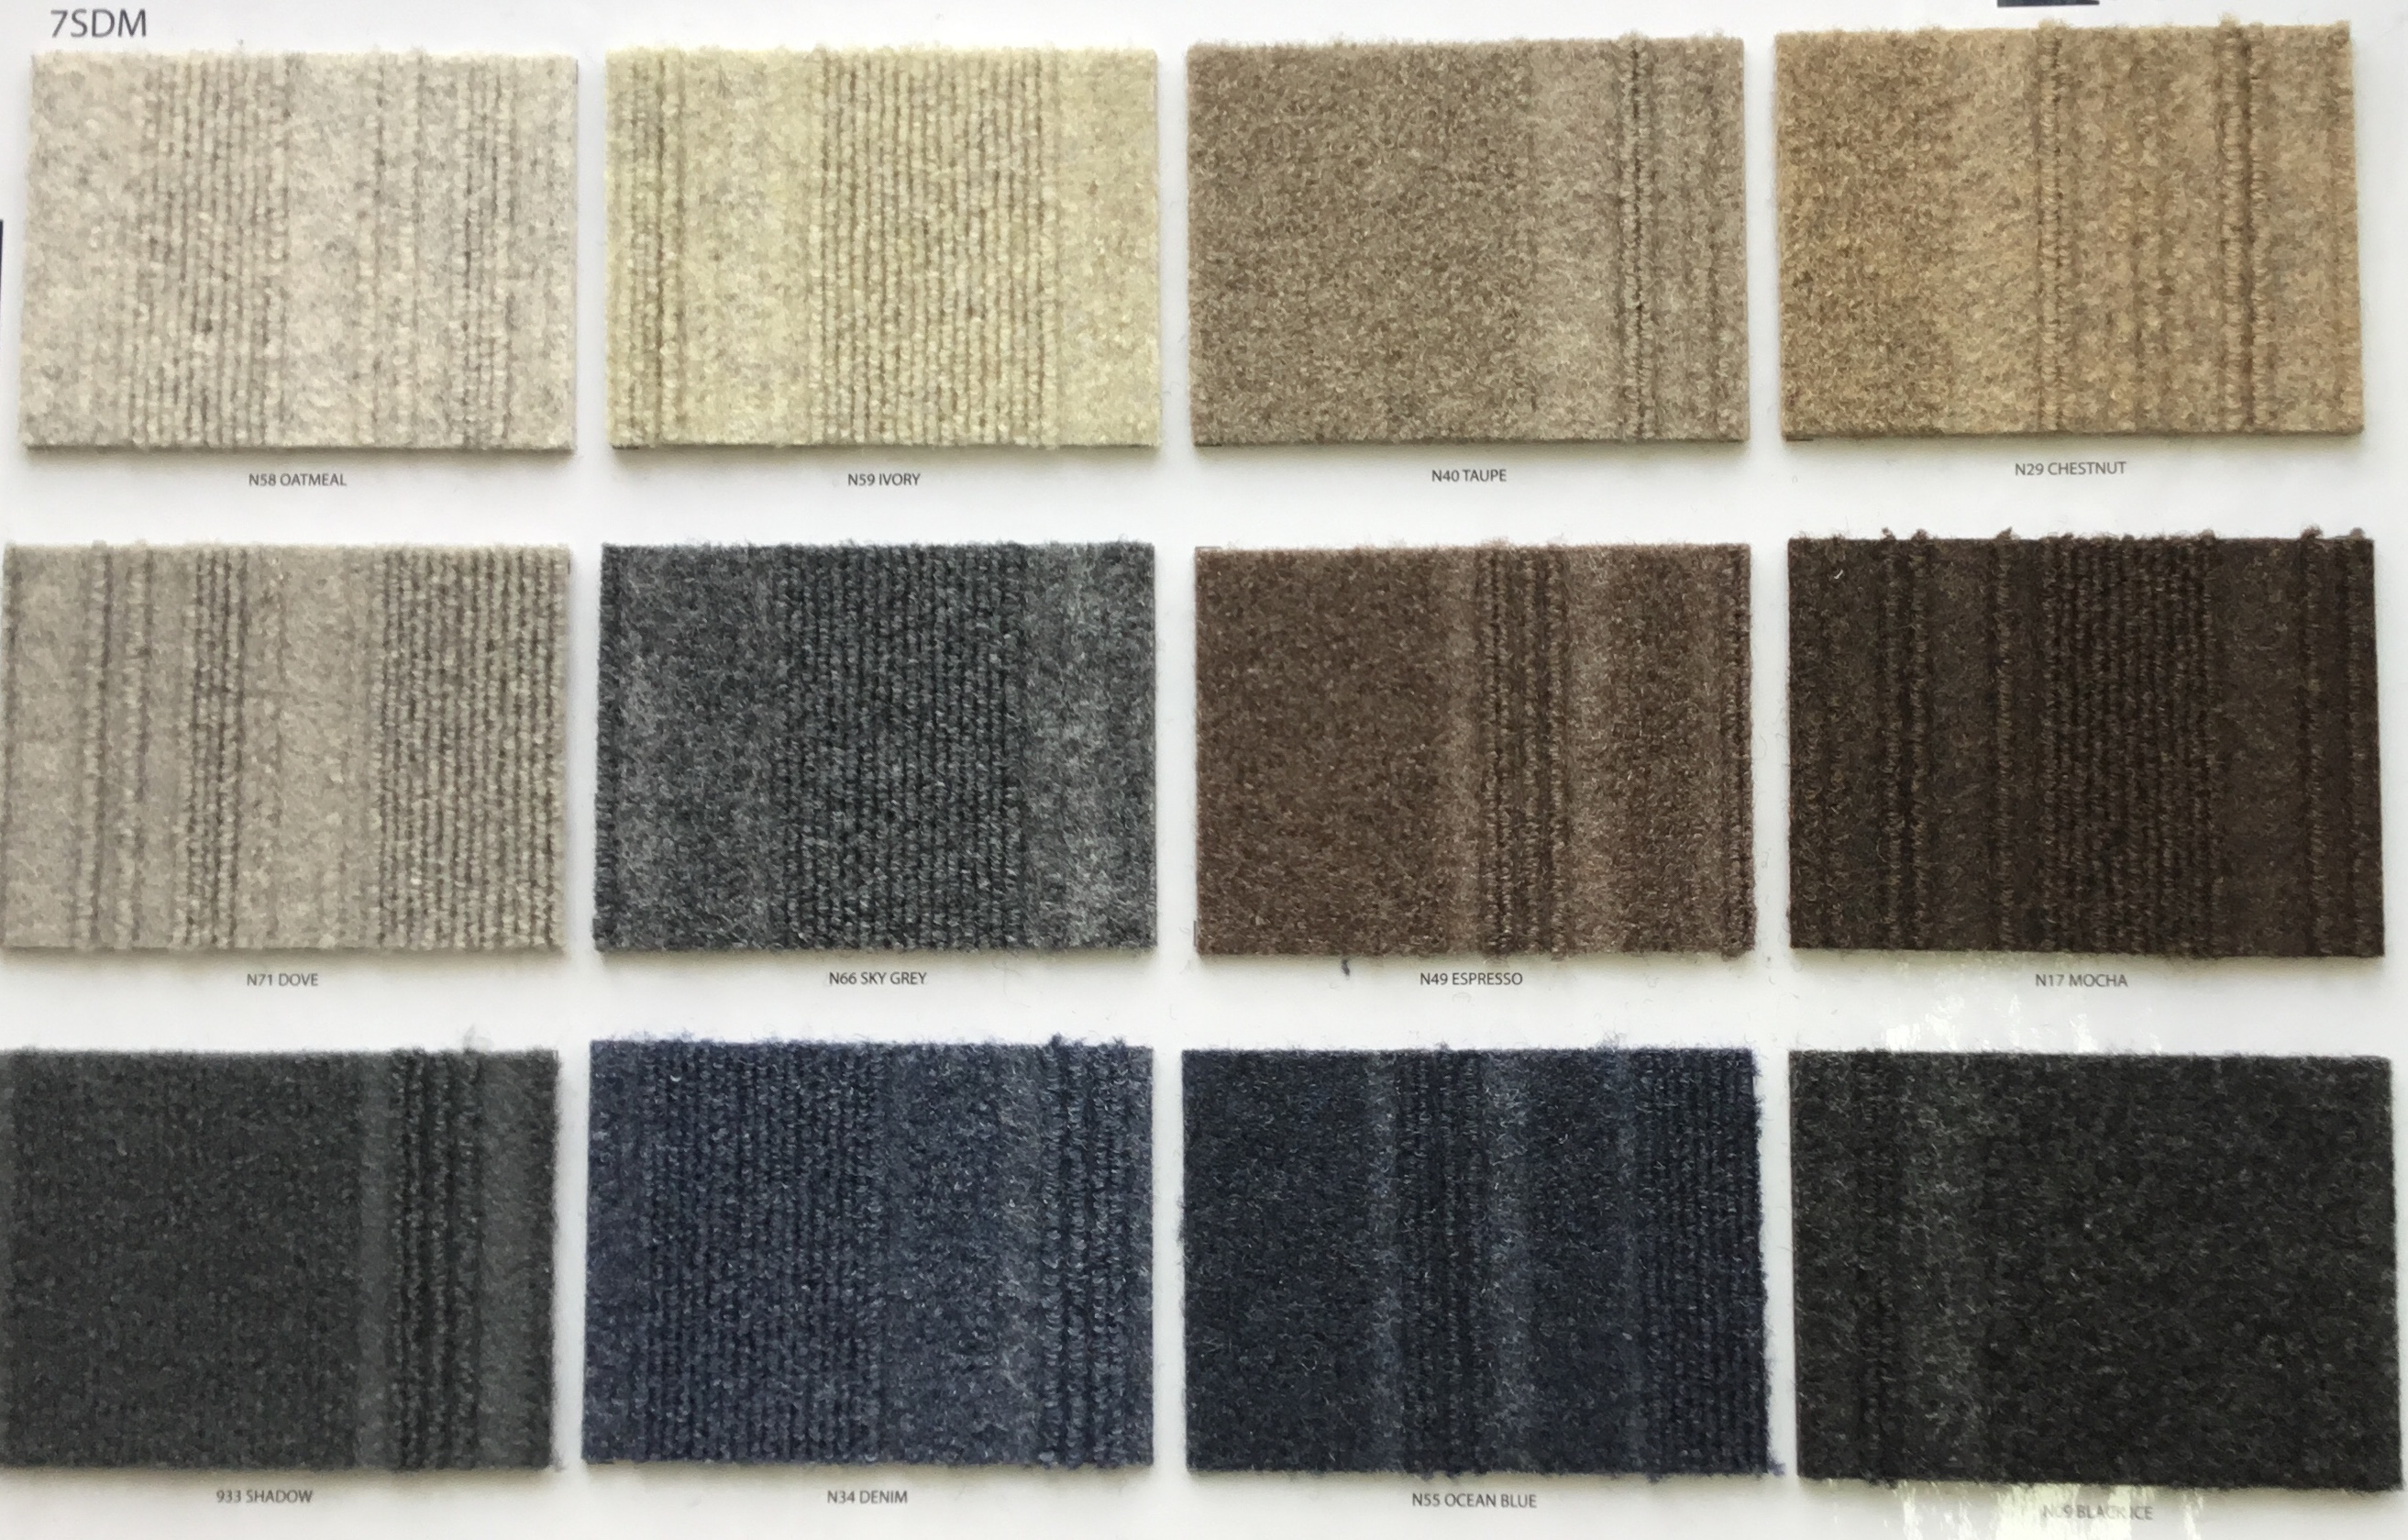 miami commercial carpet tiles miami commercial carpet tiles